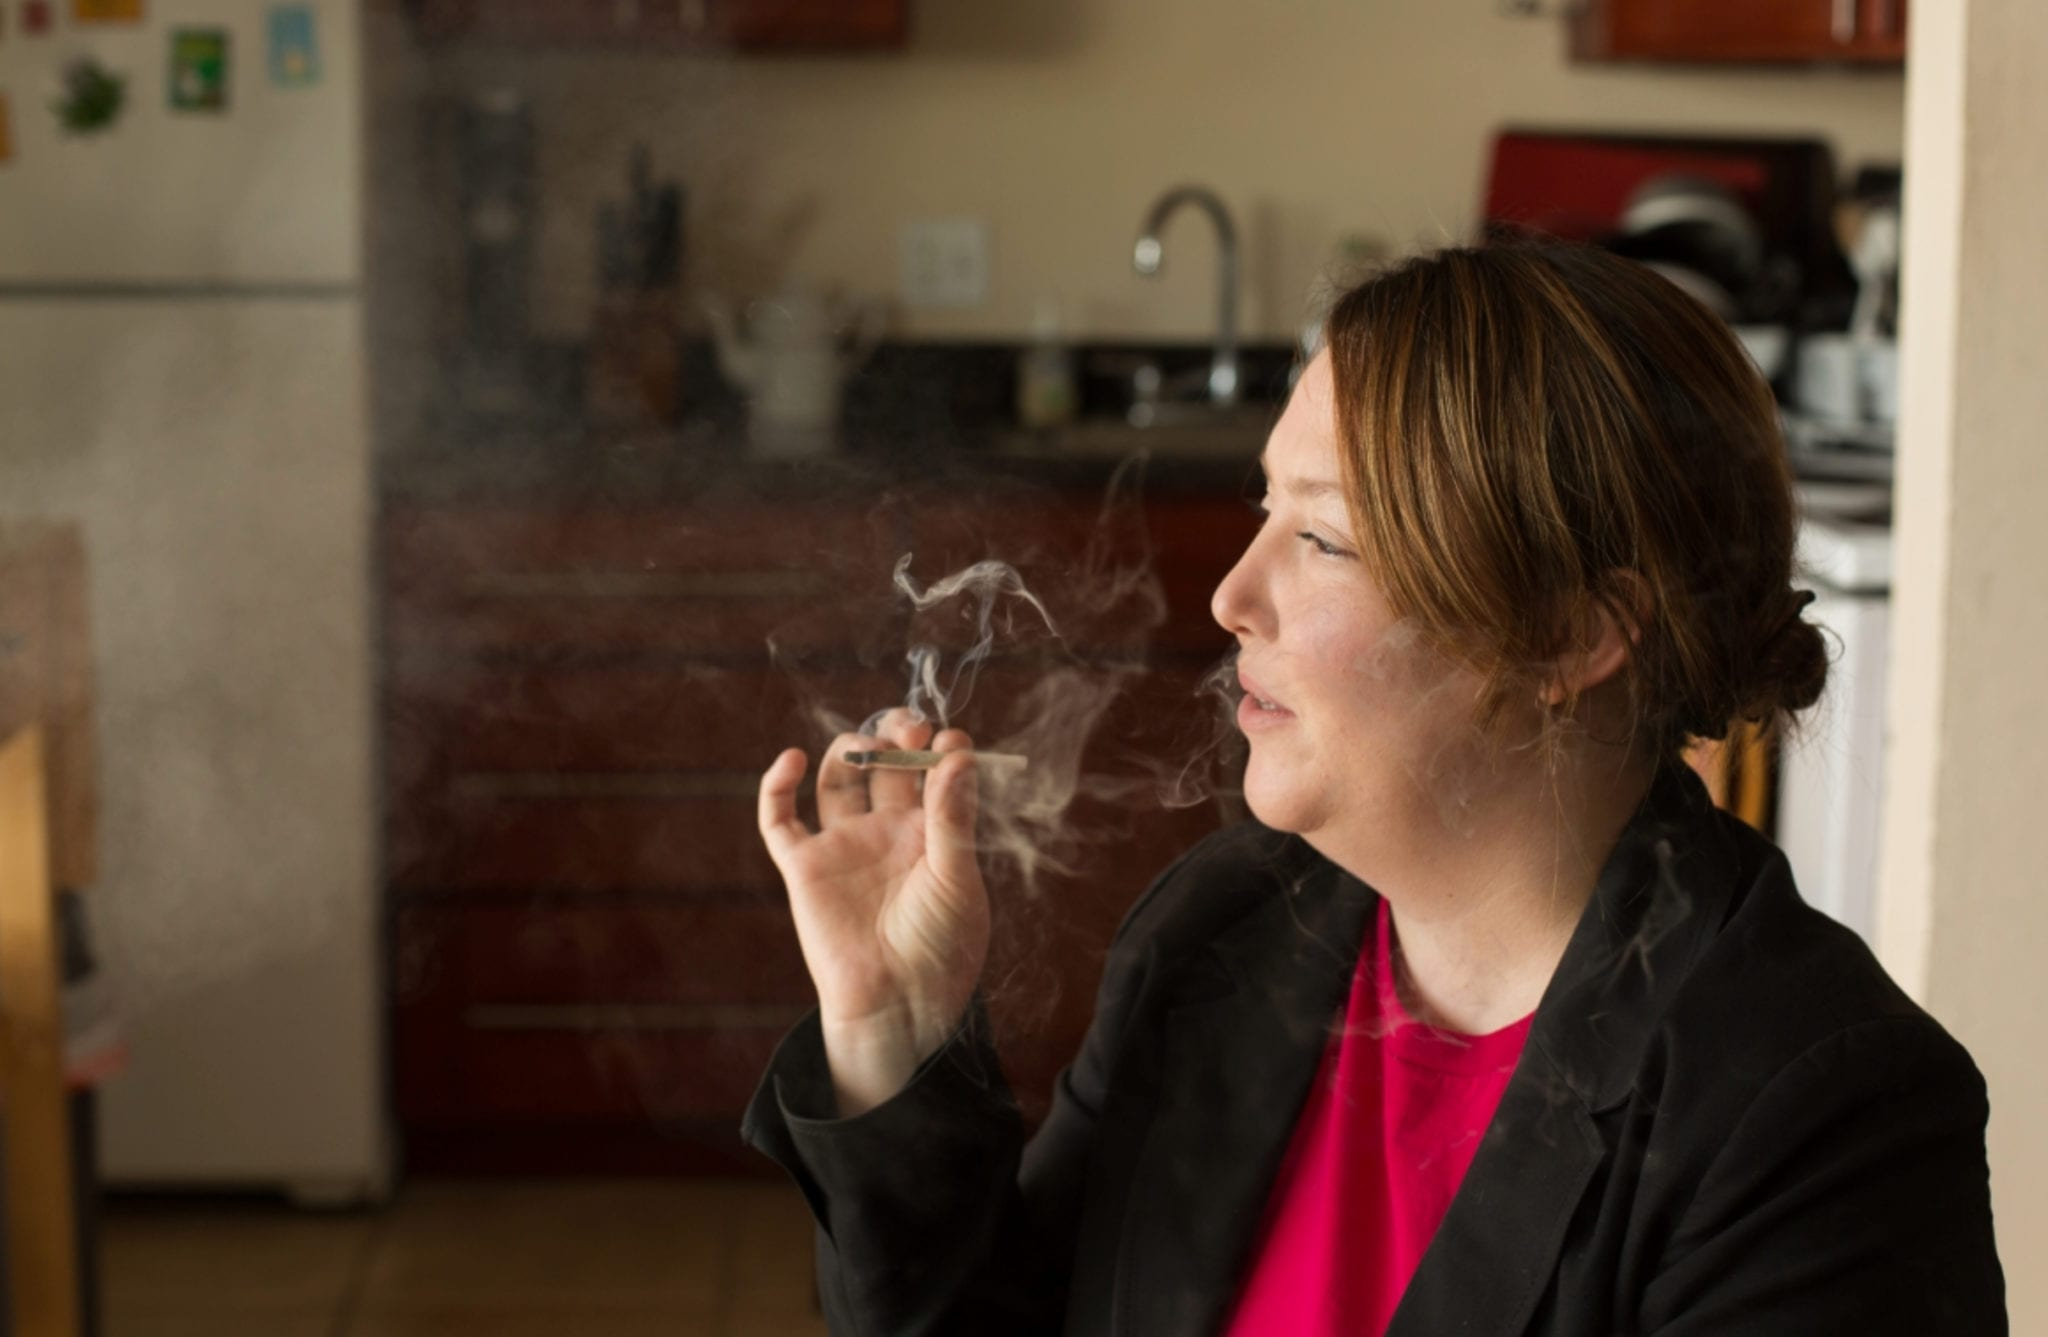 photo of Bronchitis cases 3 times higher among cannabis smokers, researcher says image